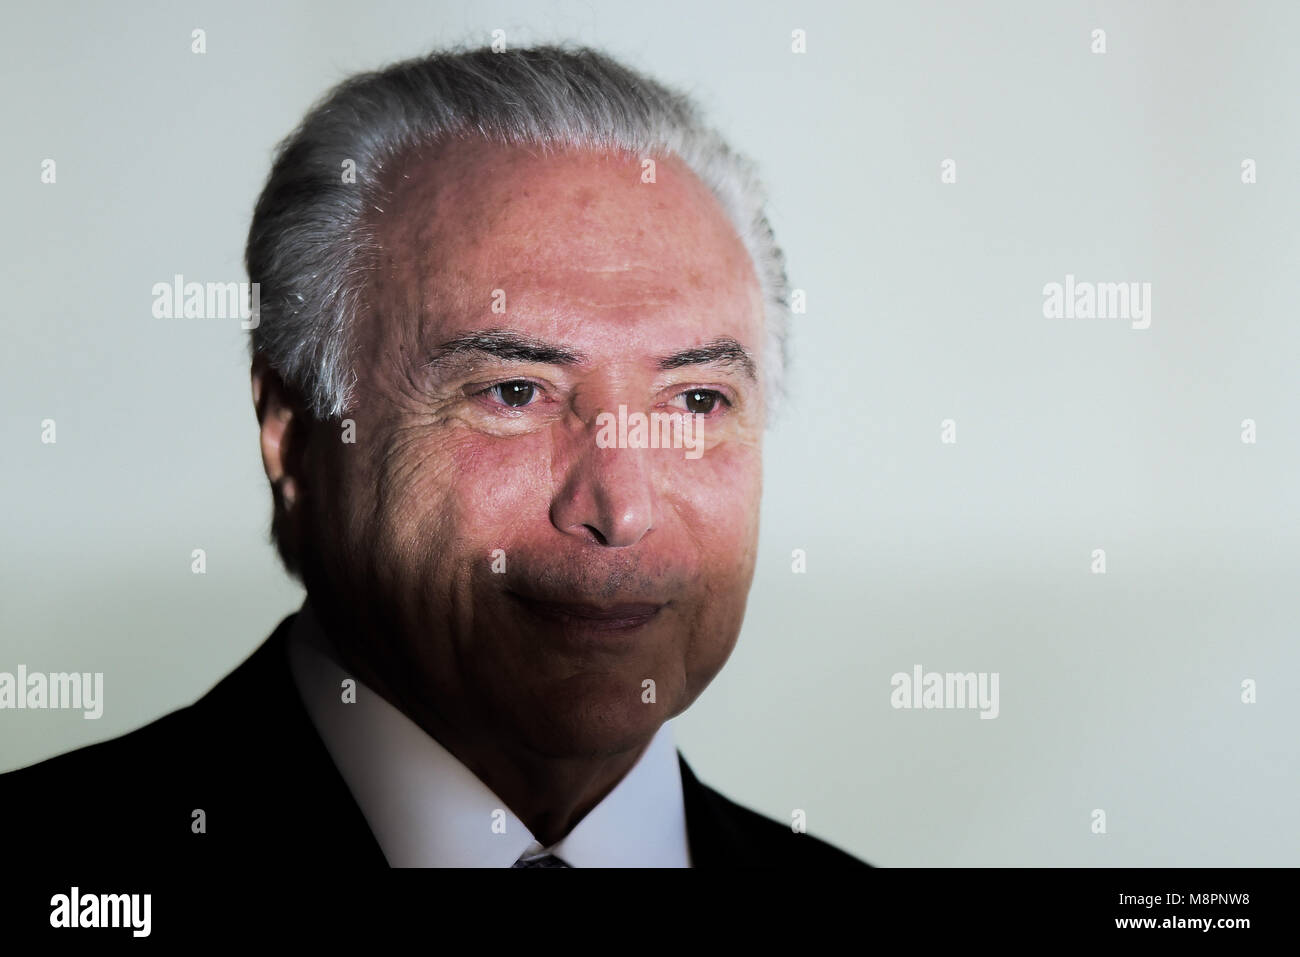 President of Brazil Michel Temer during the opening ceremony of the 8th World Water Forum at Itamaraty Palace in - Stock Image